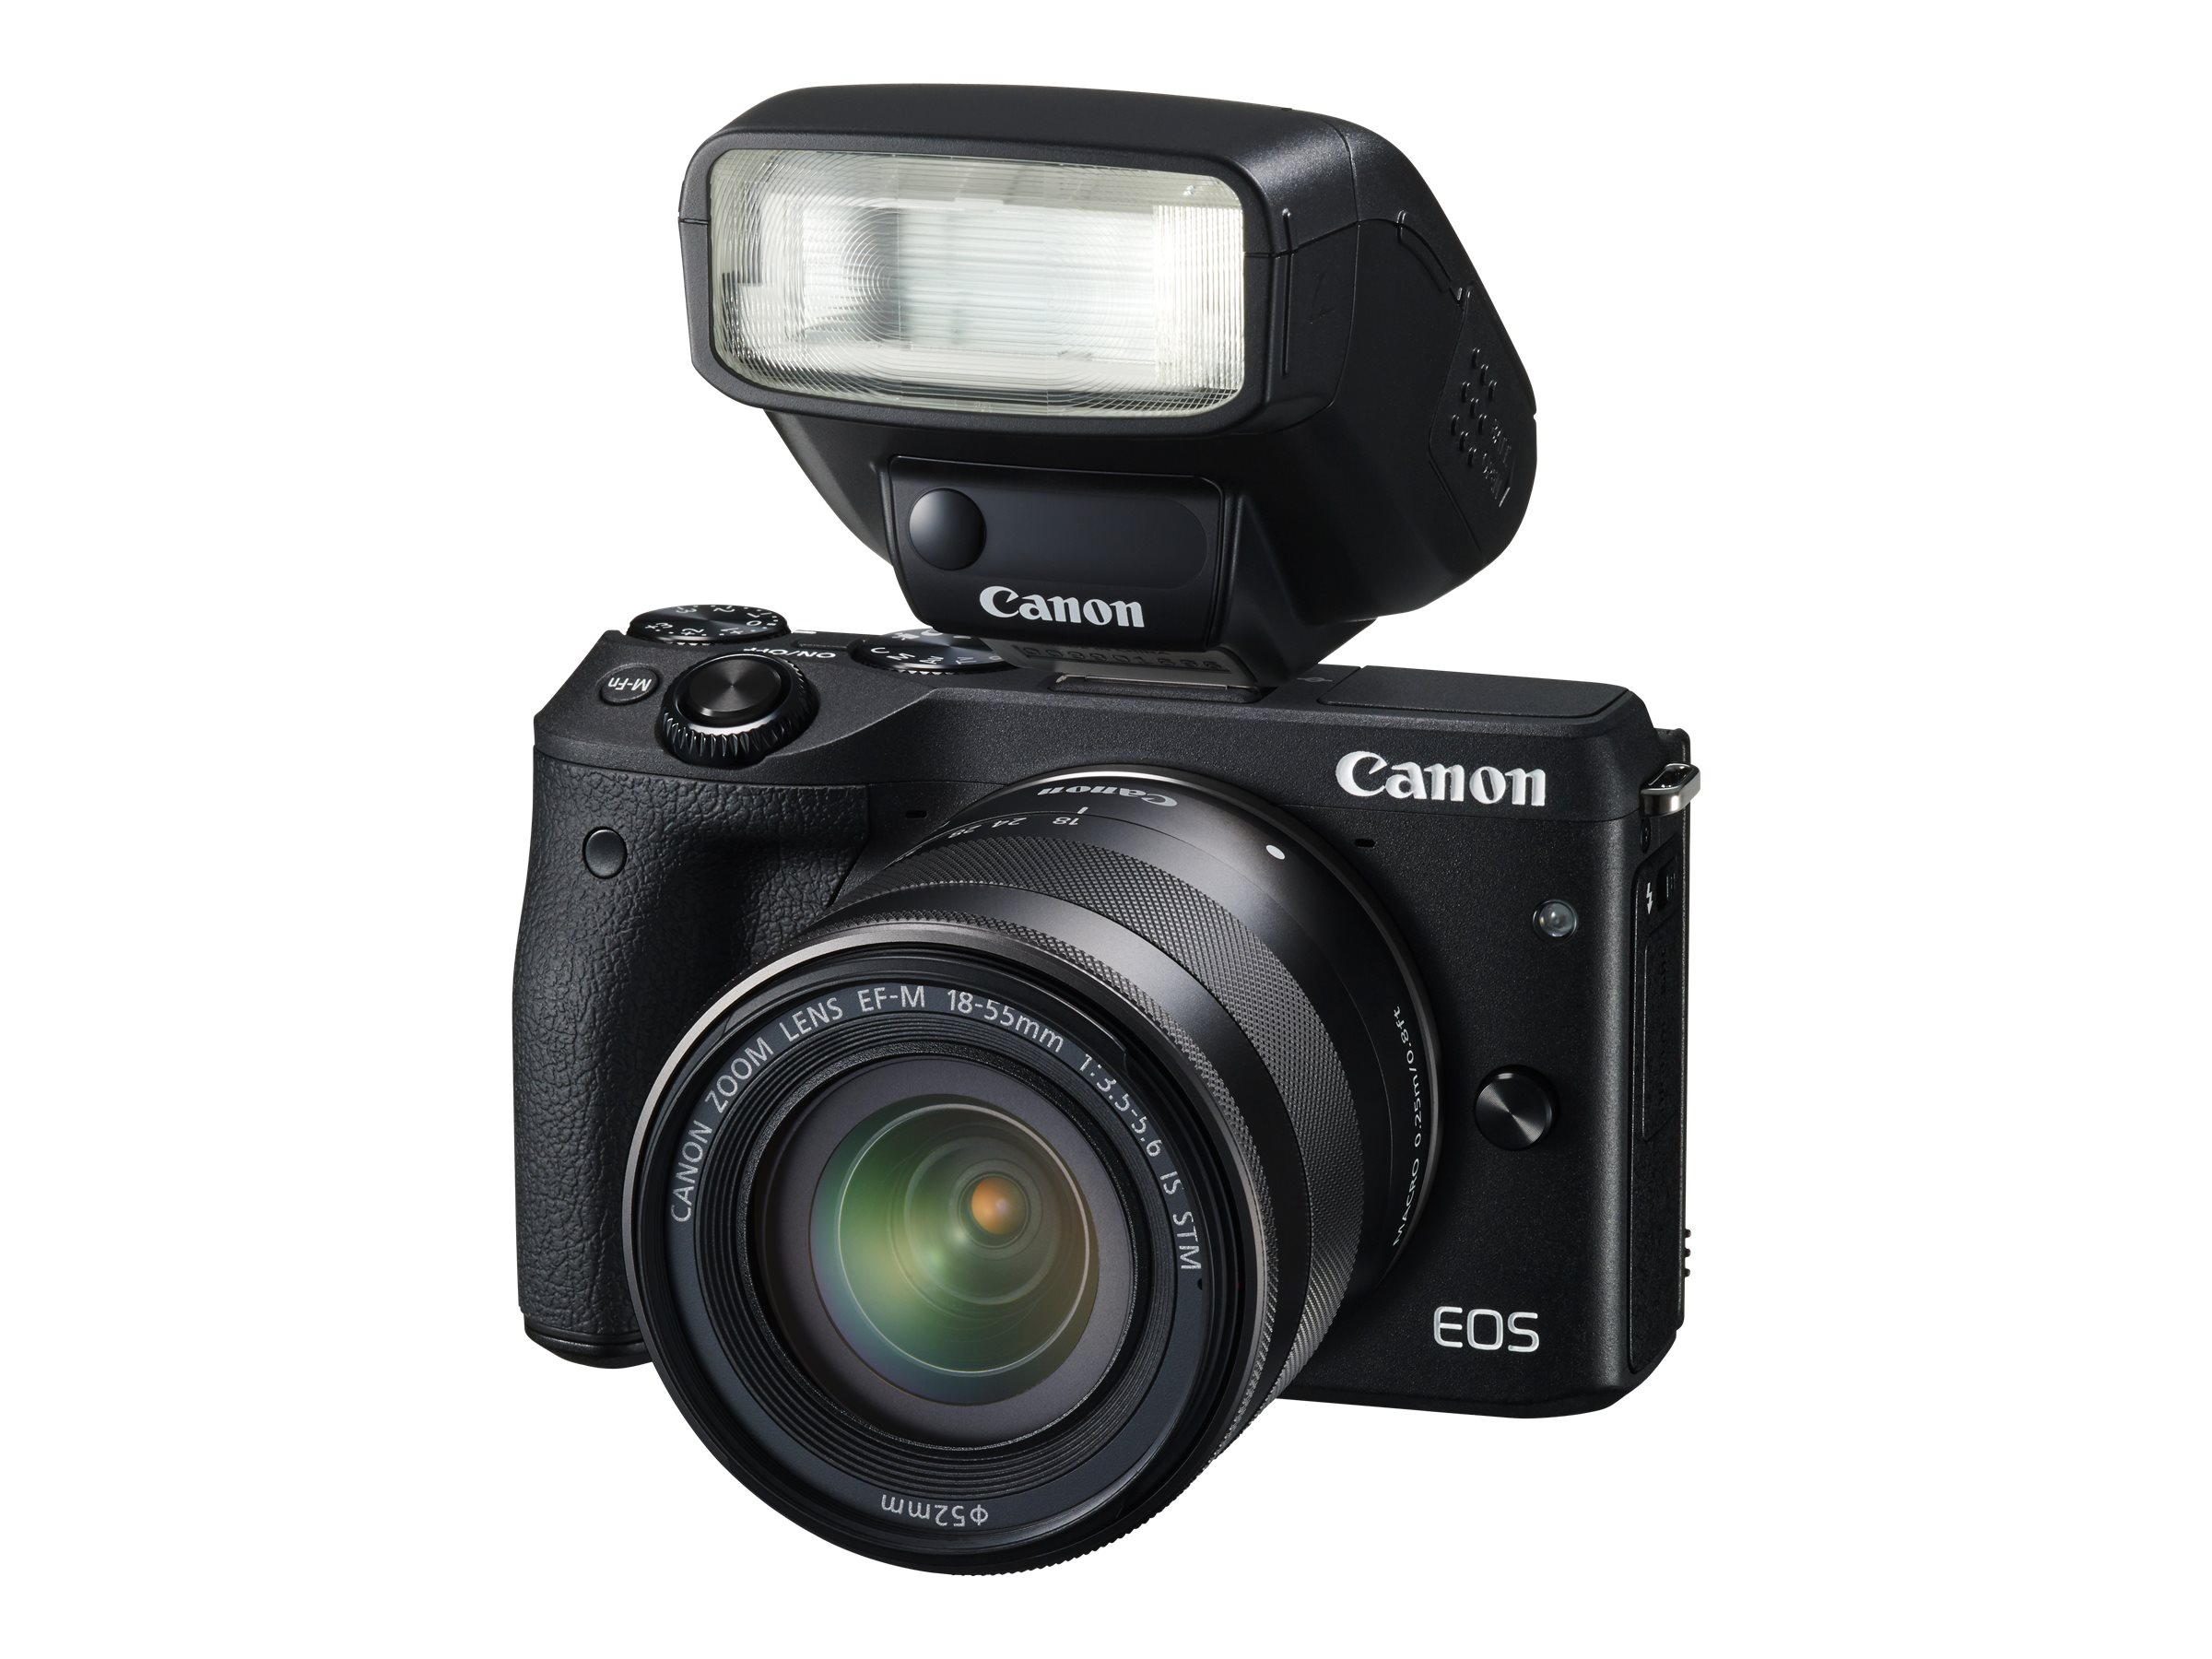 Canon EOS M3 Mirrorless Digital Camera with 18-55mm Lens, Black, 9694B011